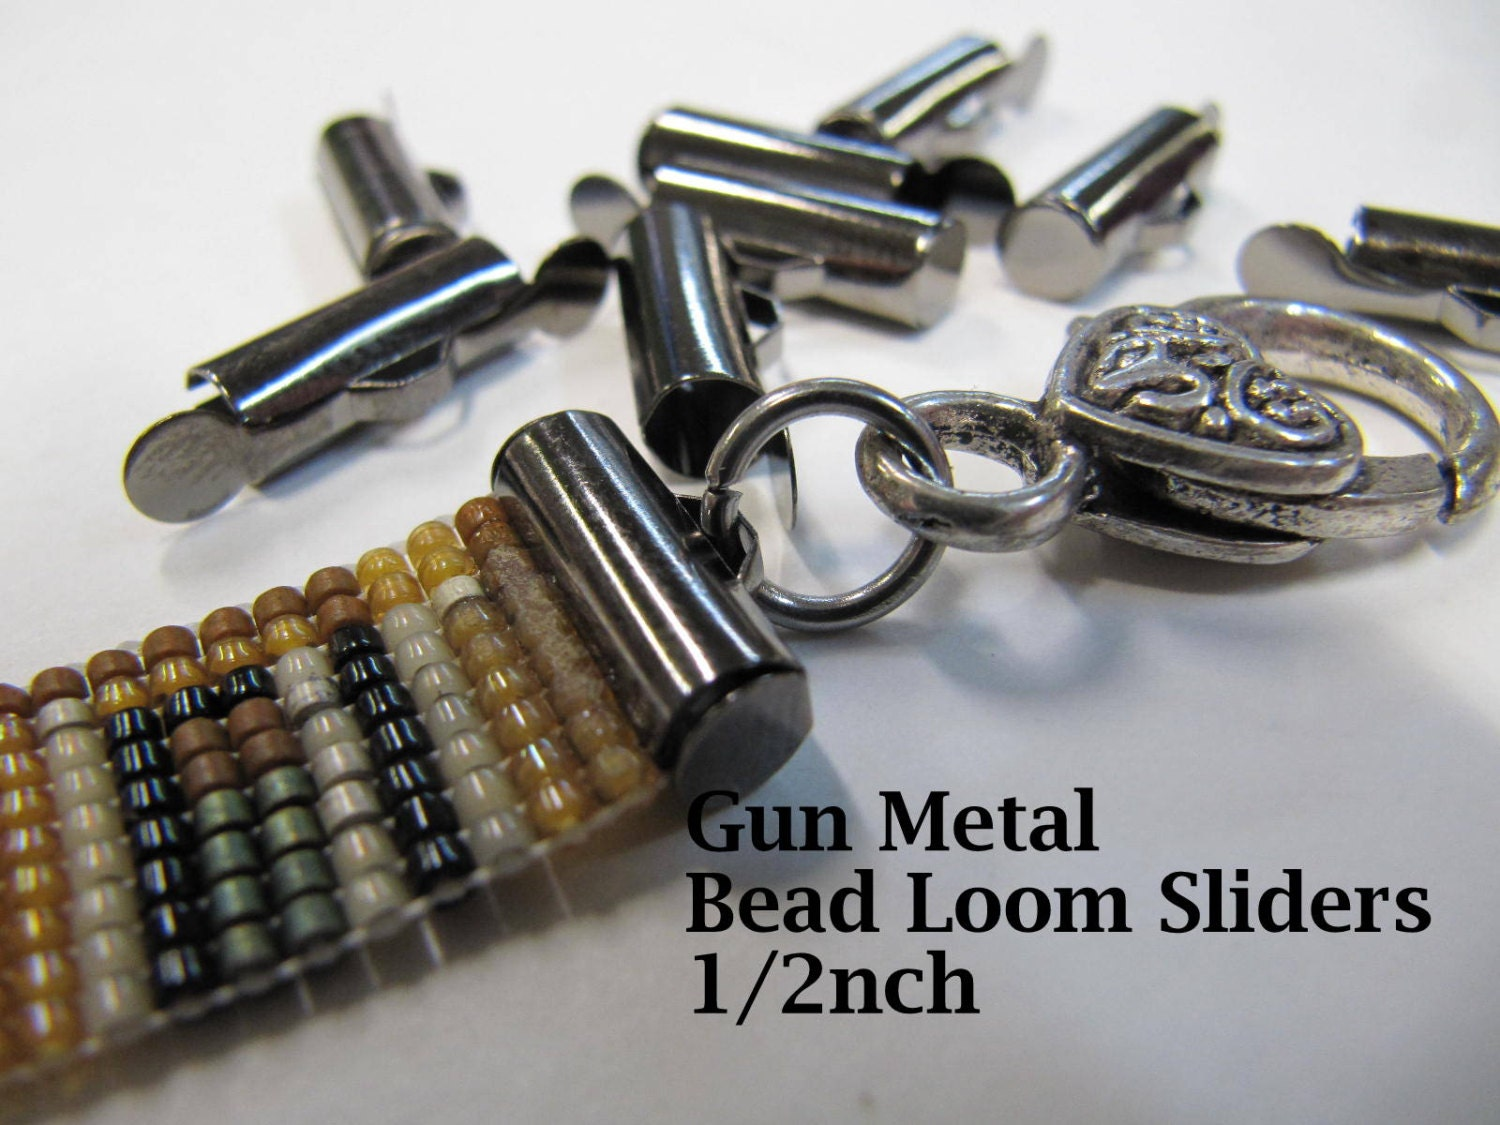 End Caps Slider Clasps, 1/2 Inch, Gun Metal Color, Loom Bead Patterns, Loom Findings, 10 Pack, Look Is Clean and Neat. Limited Supply!